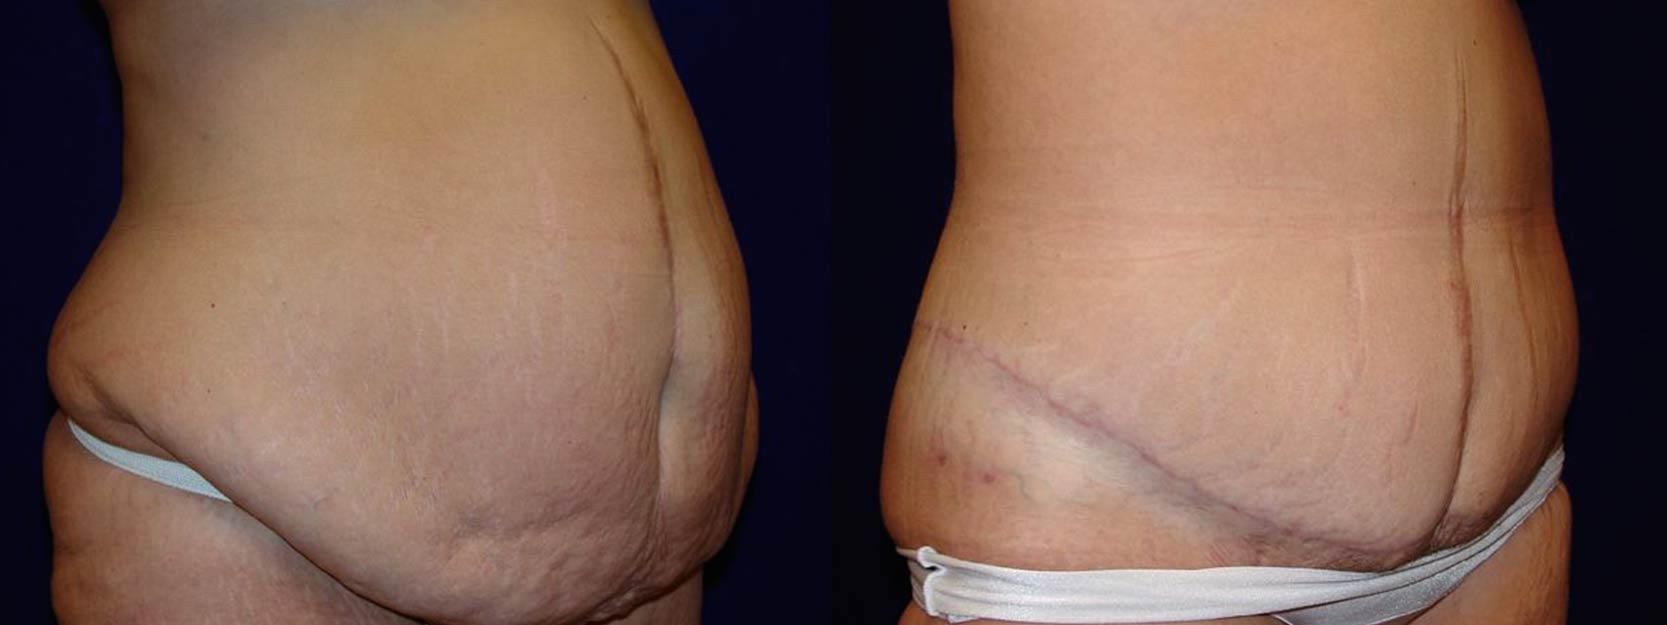 Right 3/4 View - Circumferential Tummy Tuck After Massive Weight Loss